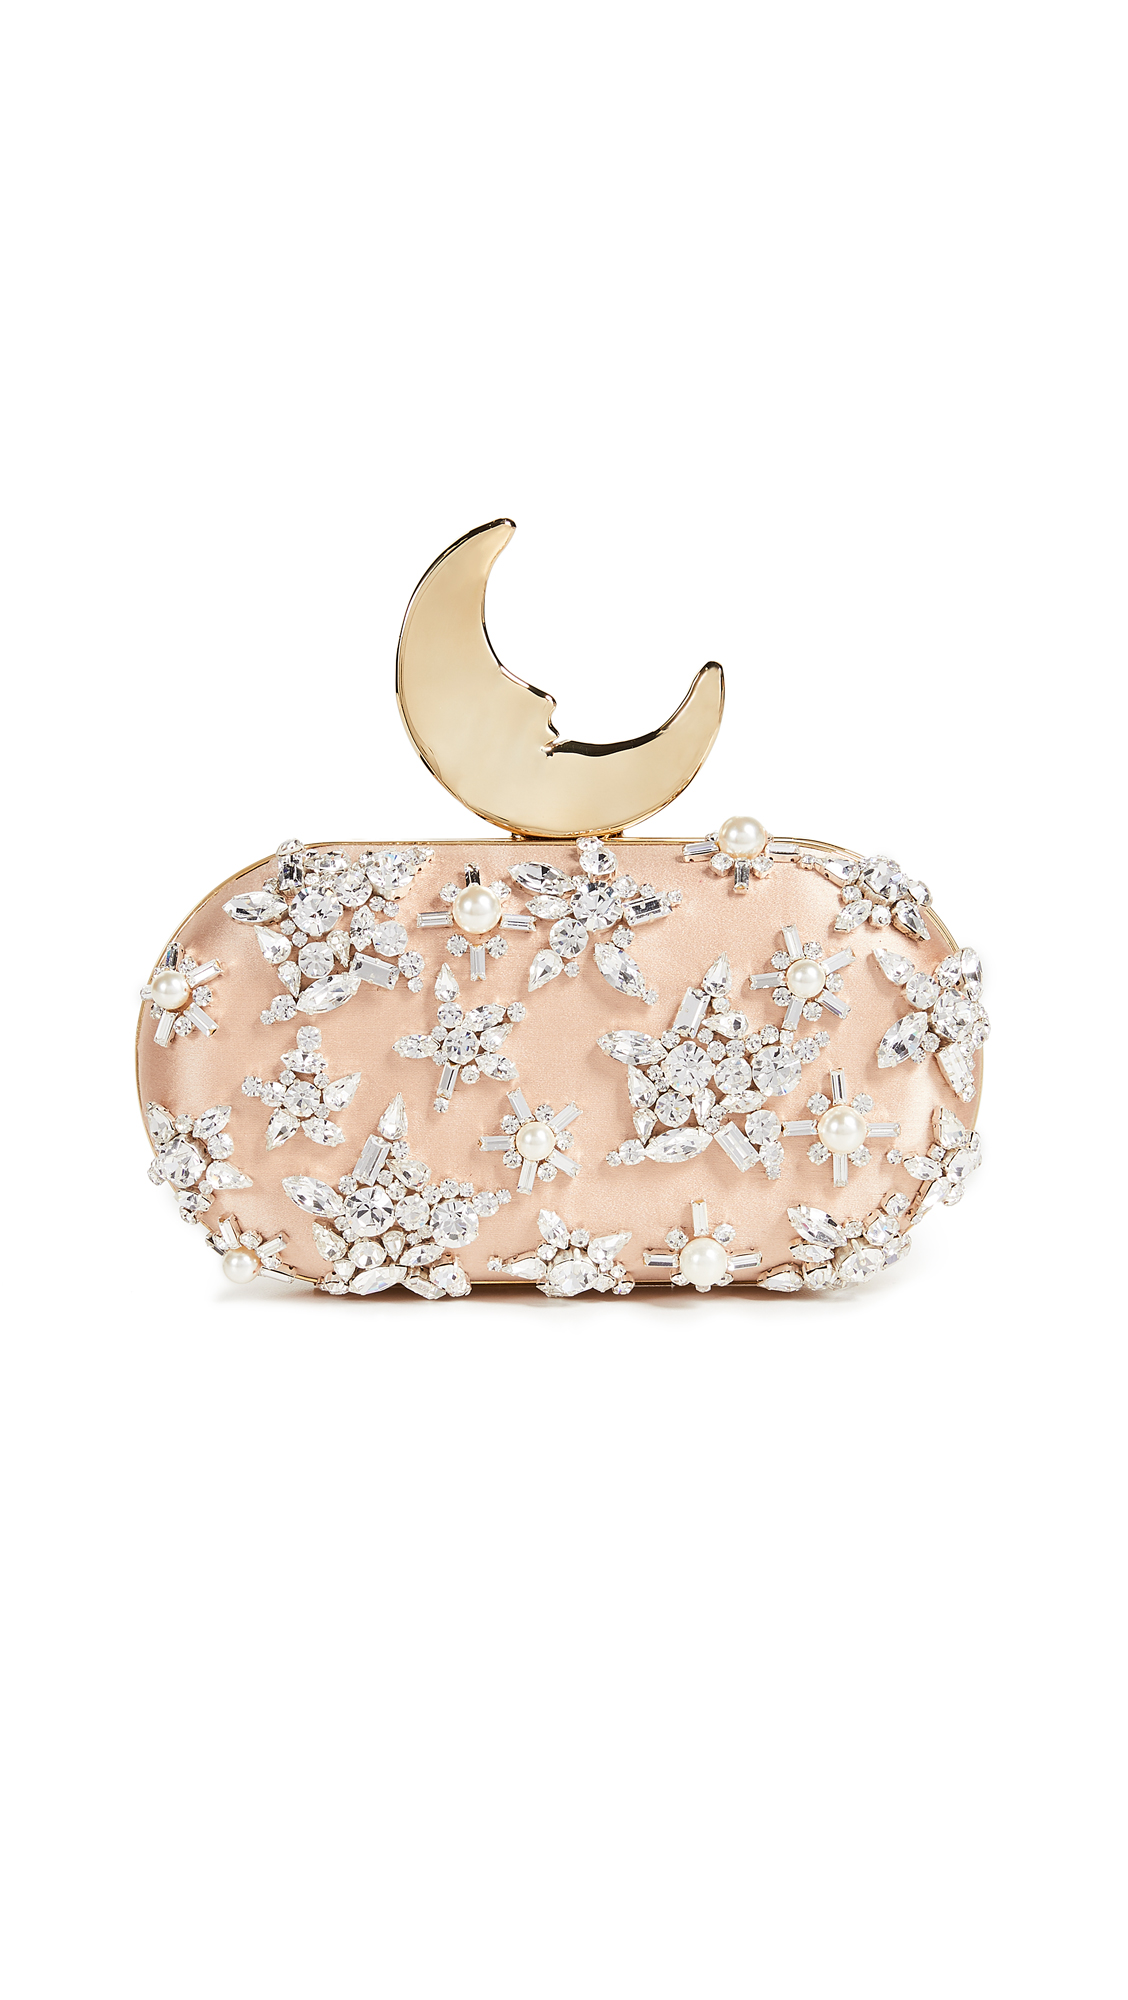 BENEDETTA BRUZZICHES SMILING MOON CLUTCH